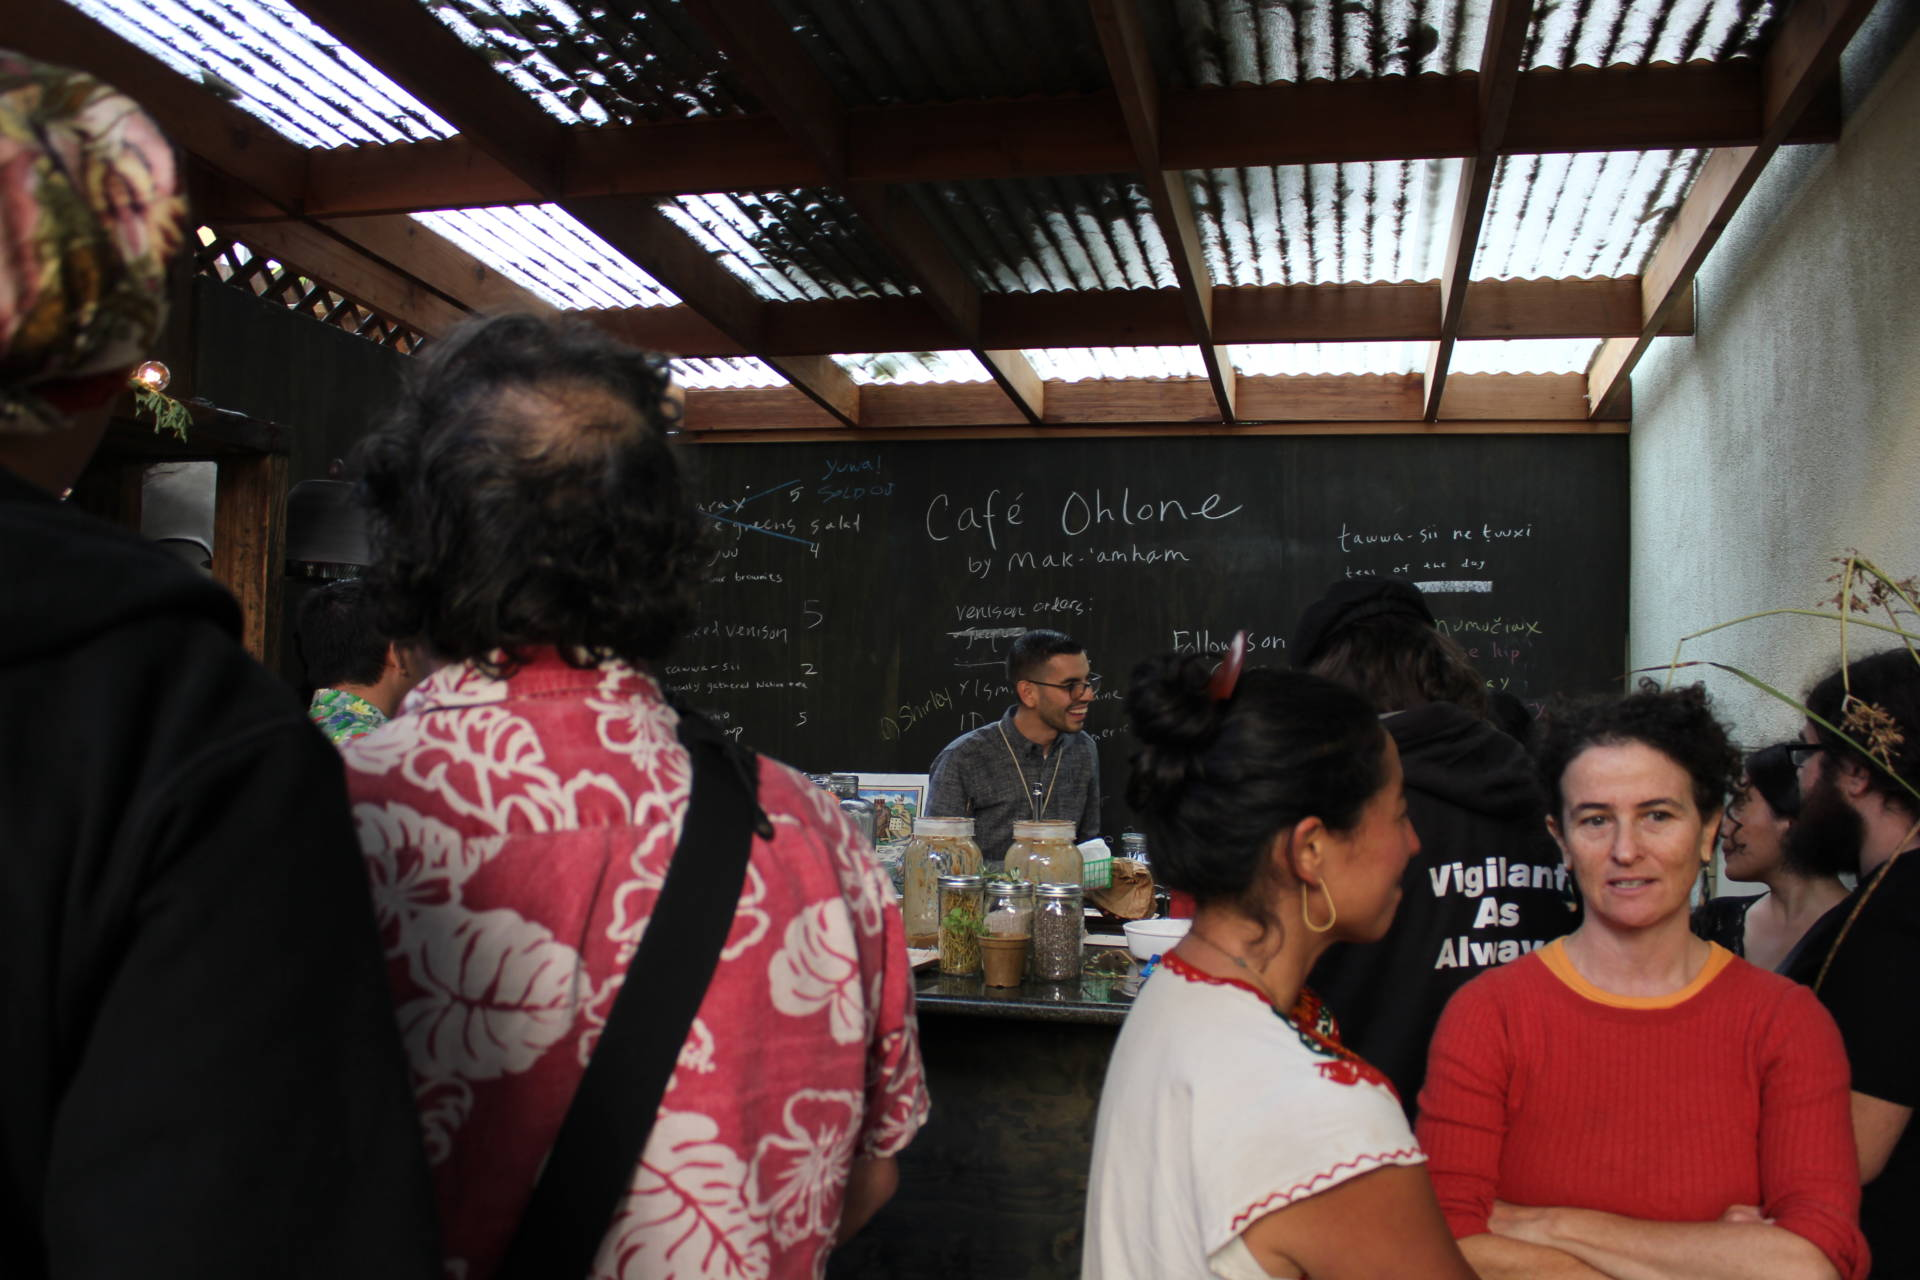 Cafe Ohlone co-owner Louis Trevino waits on a long line of eager diners at a preview tasting at the new Berkeley cafe. Sara Hossaini/KQED